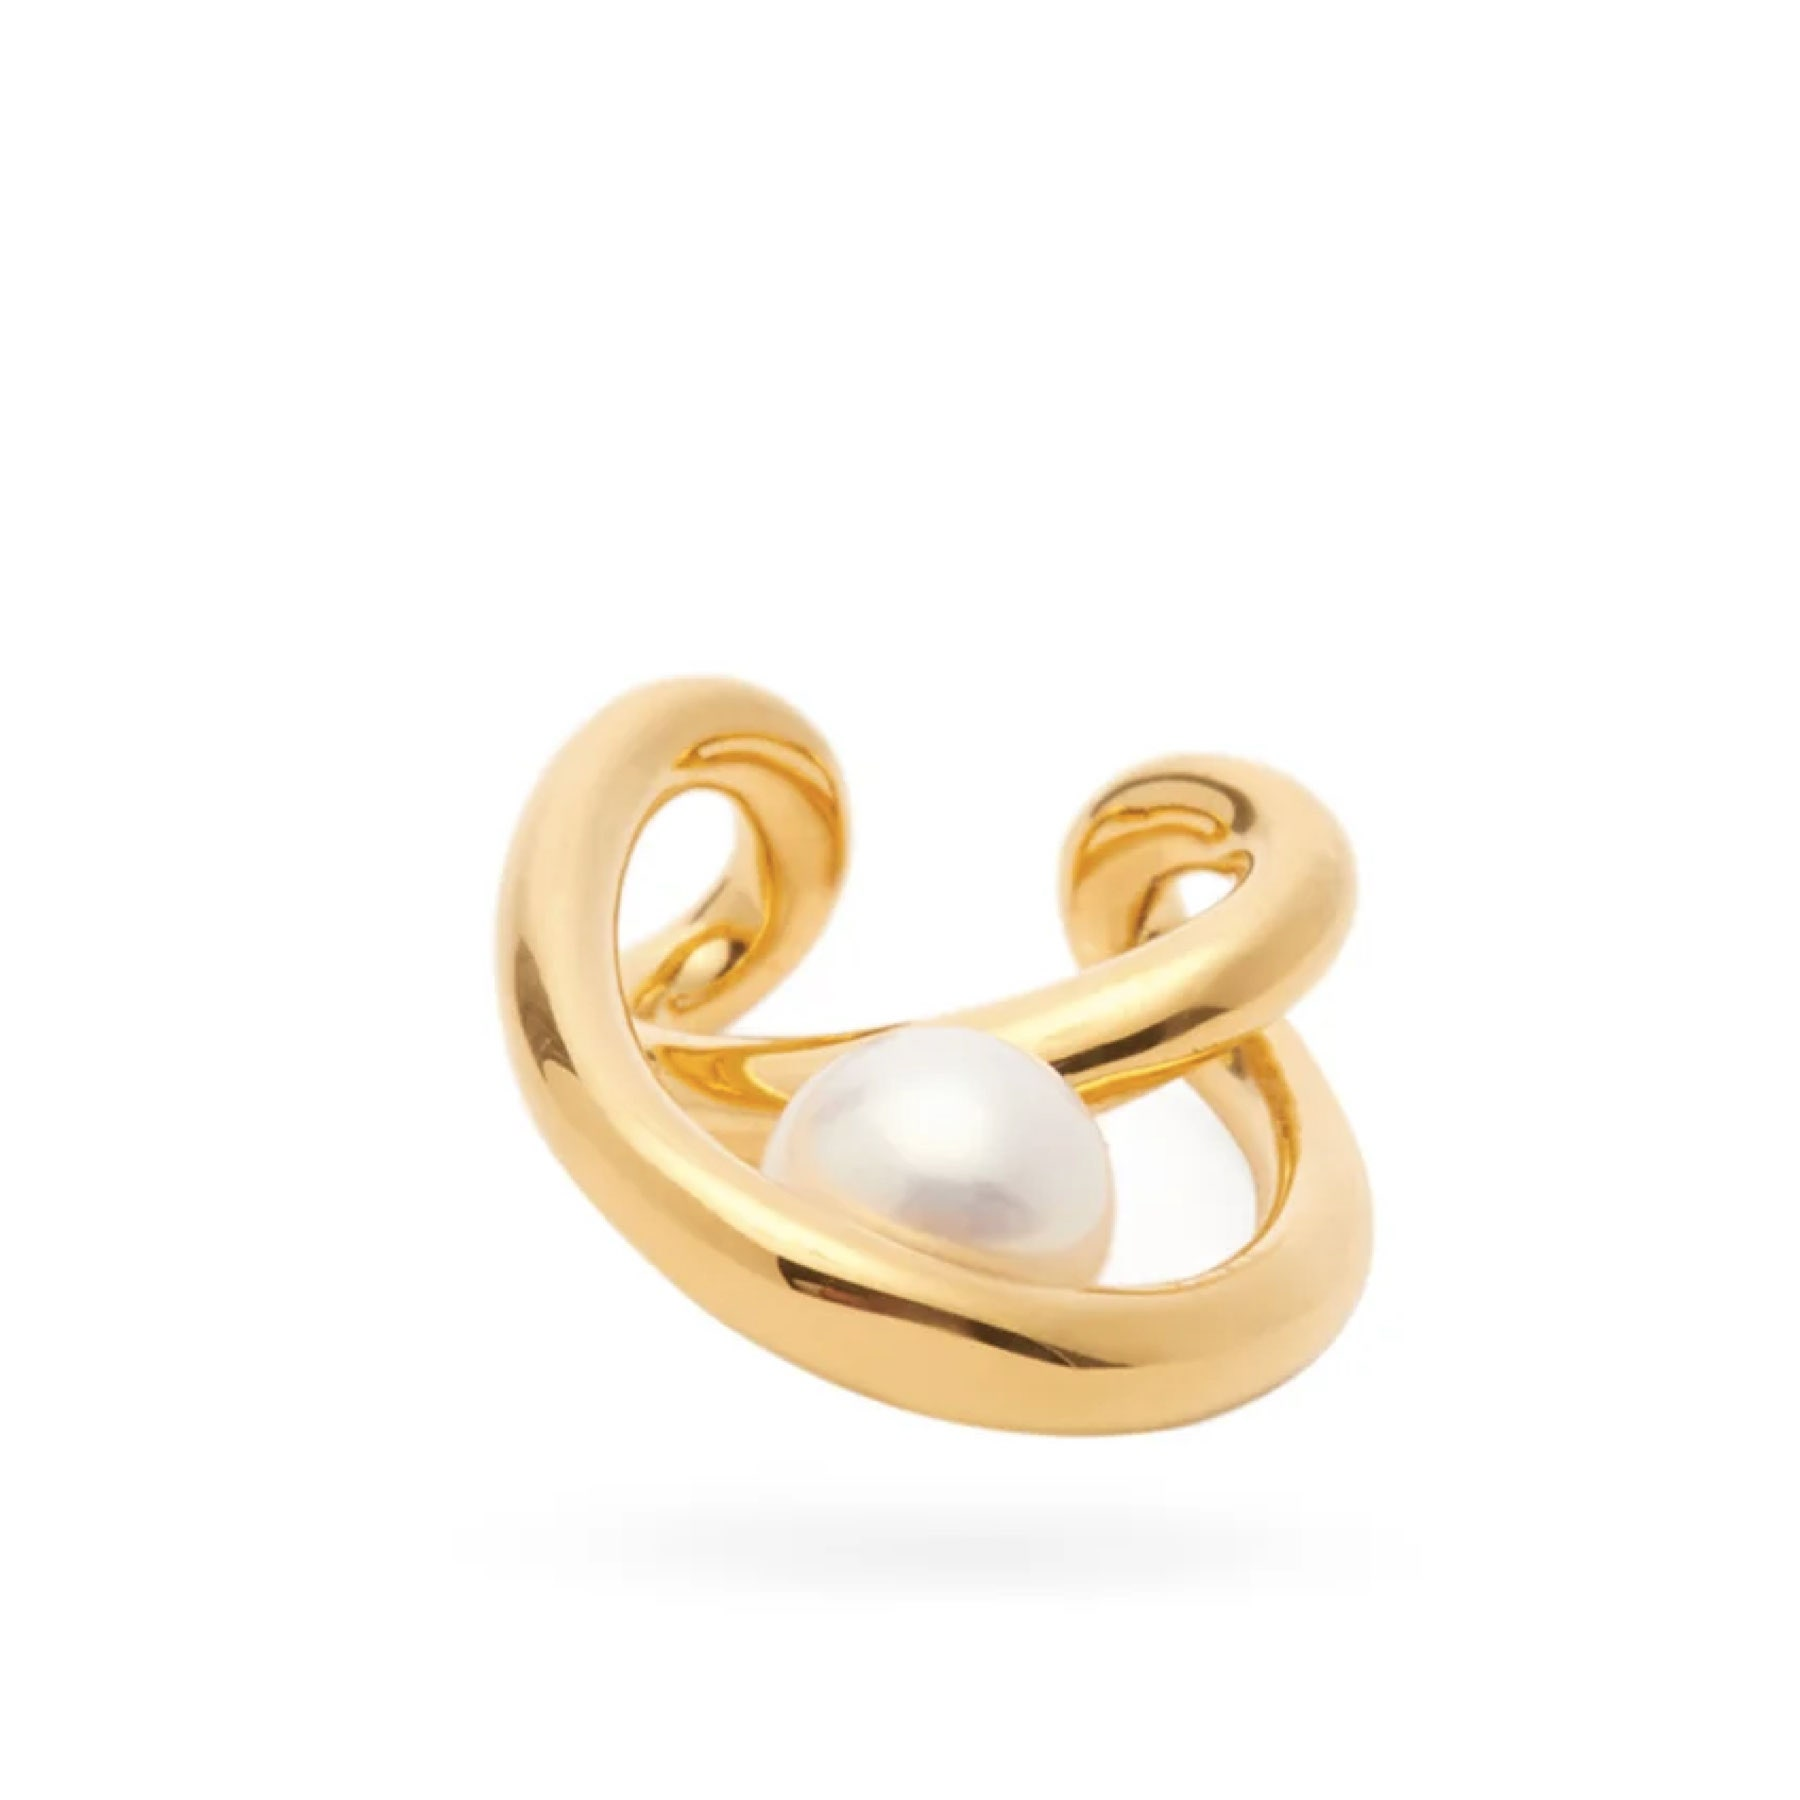 gold and pearl ear cuff